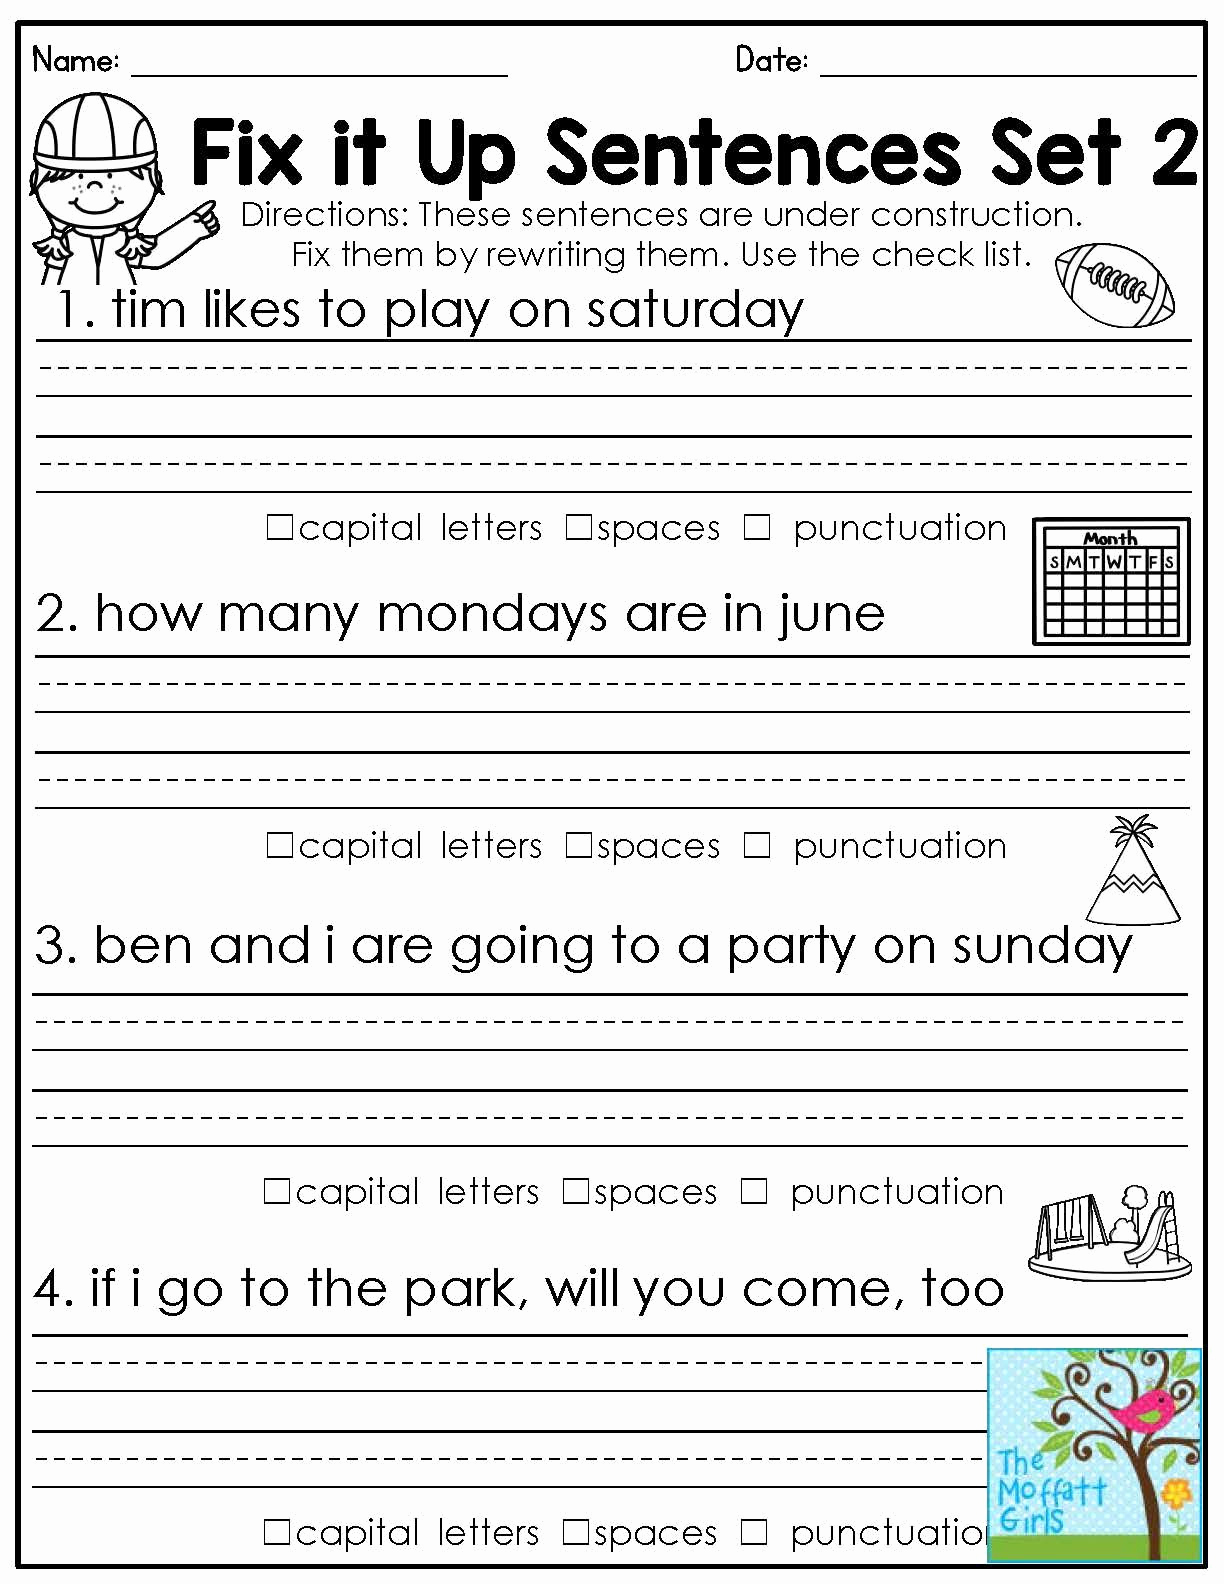 Capitalization Worksheets for 2nd Grade Elegant 20 Capitalization Worksheets for 2nd Grade